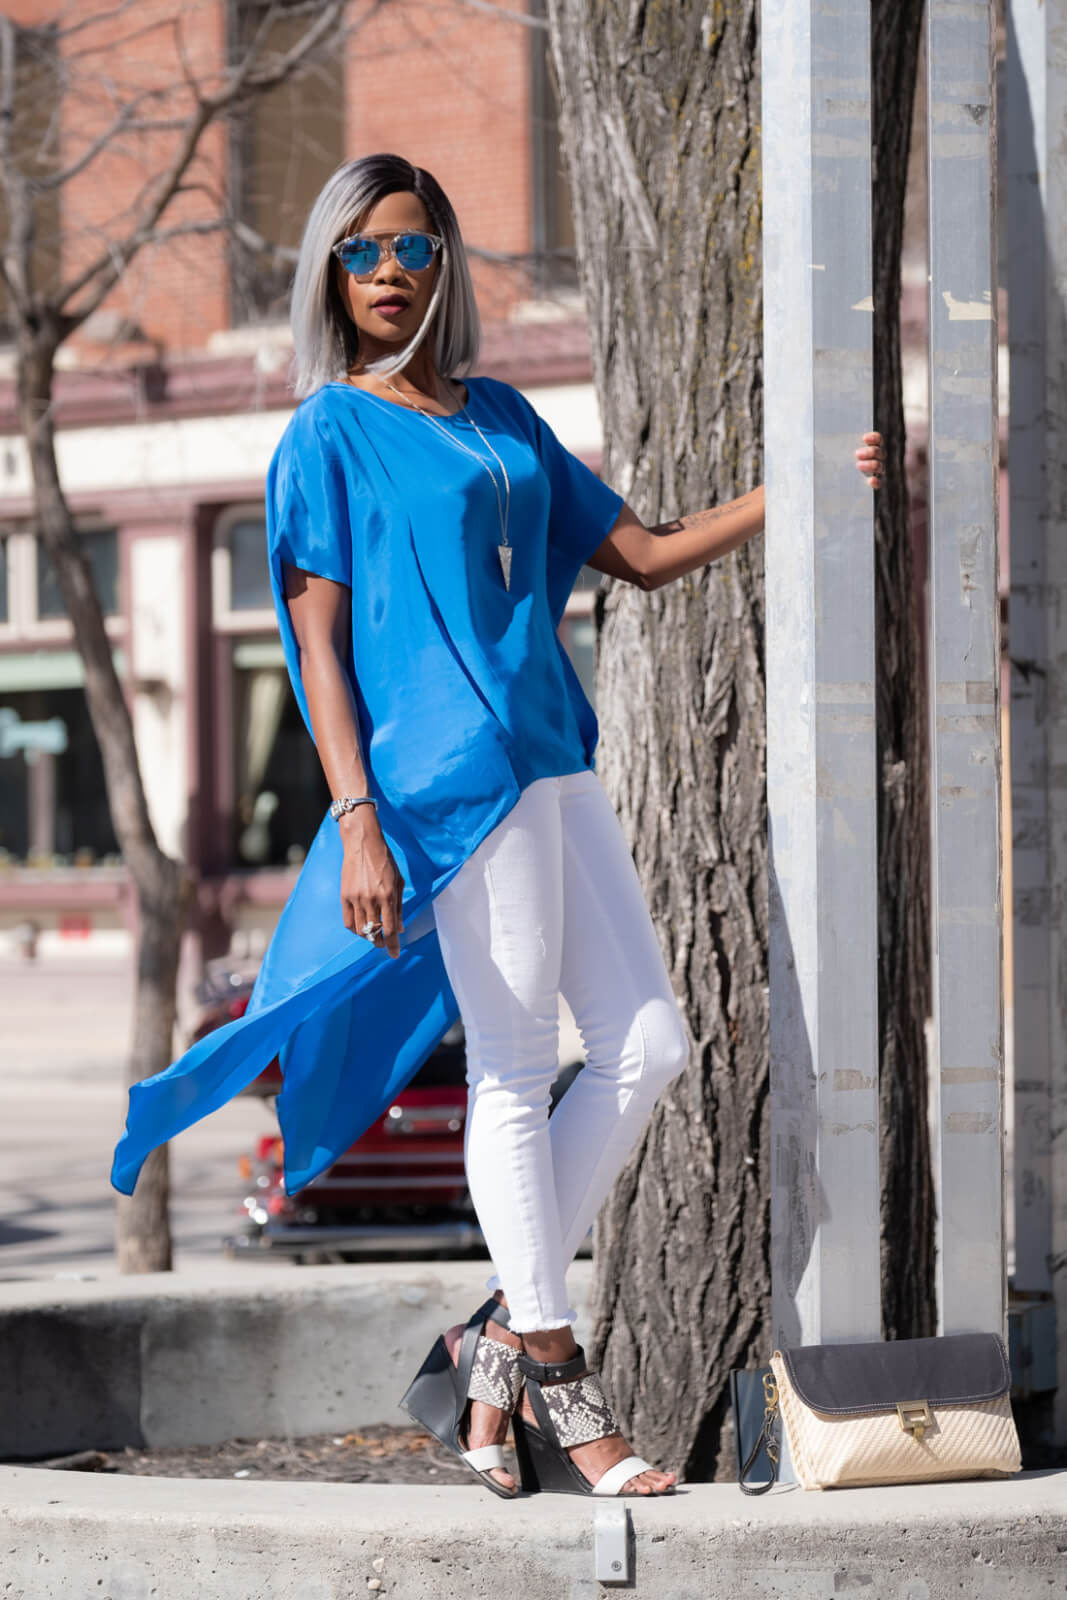 Tunice Top, Winnipeg Fashion Blogger, Zara Top, Spring Fashion, Spring Fashion Trends